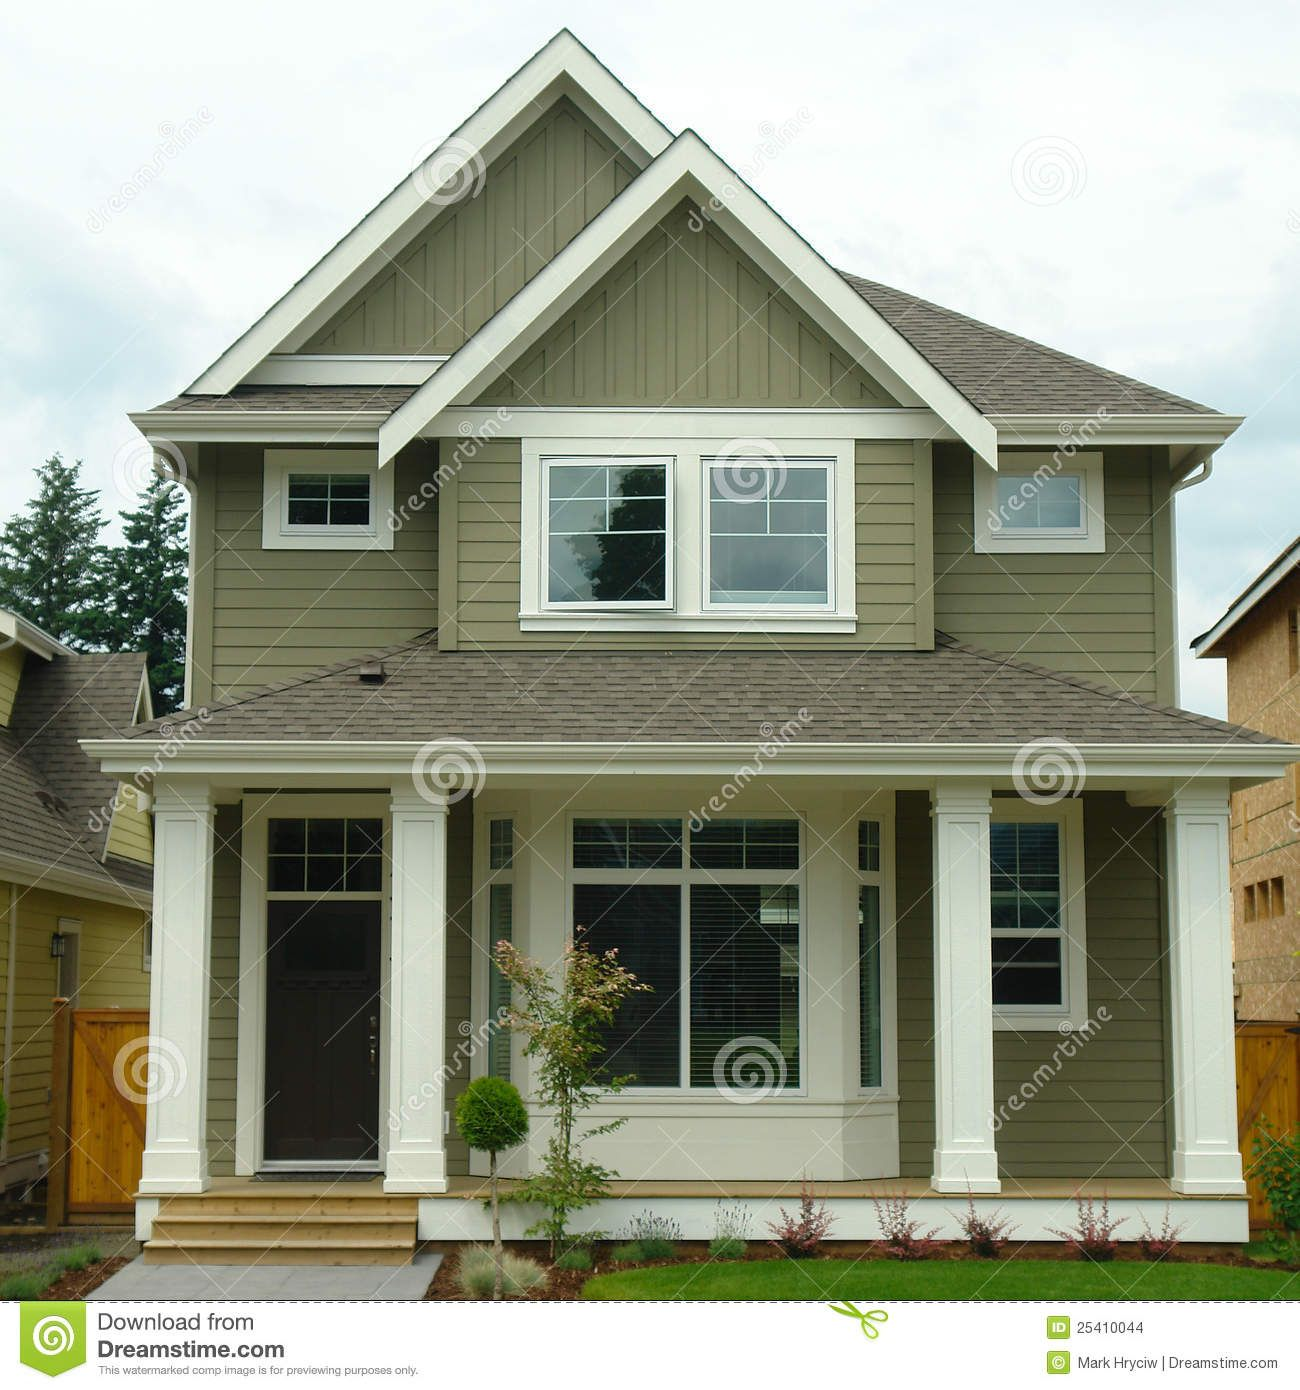 Forest green exterior house color new home house exterior green exterior house - Home exterior paint ...